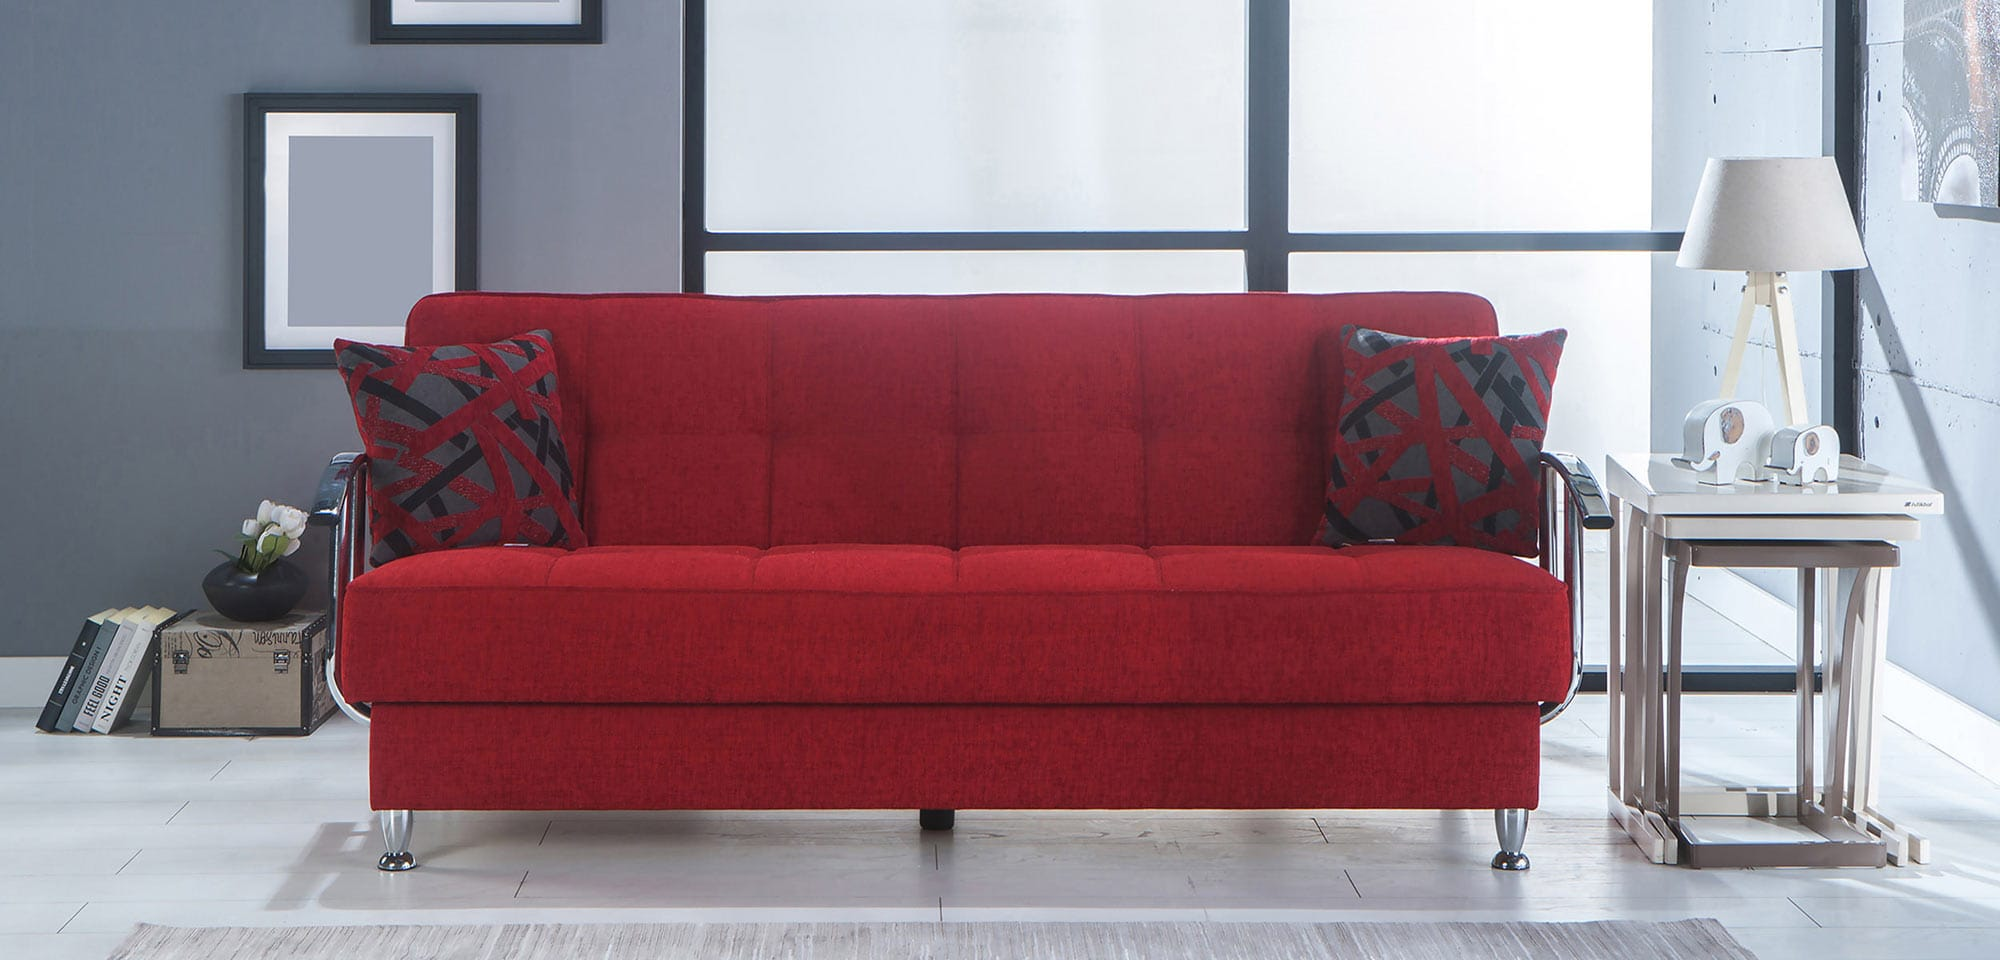 Betsy Story Red Convertible Sofa Bed By